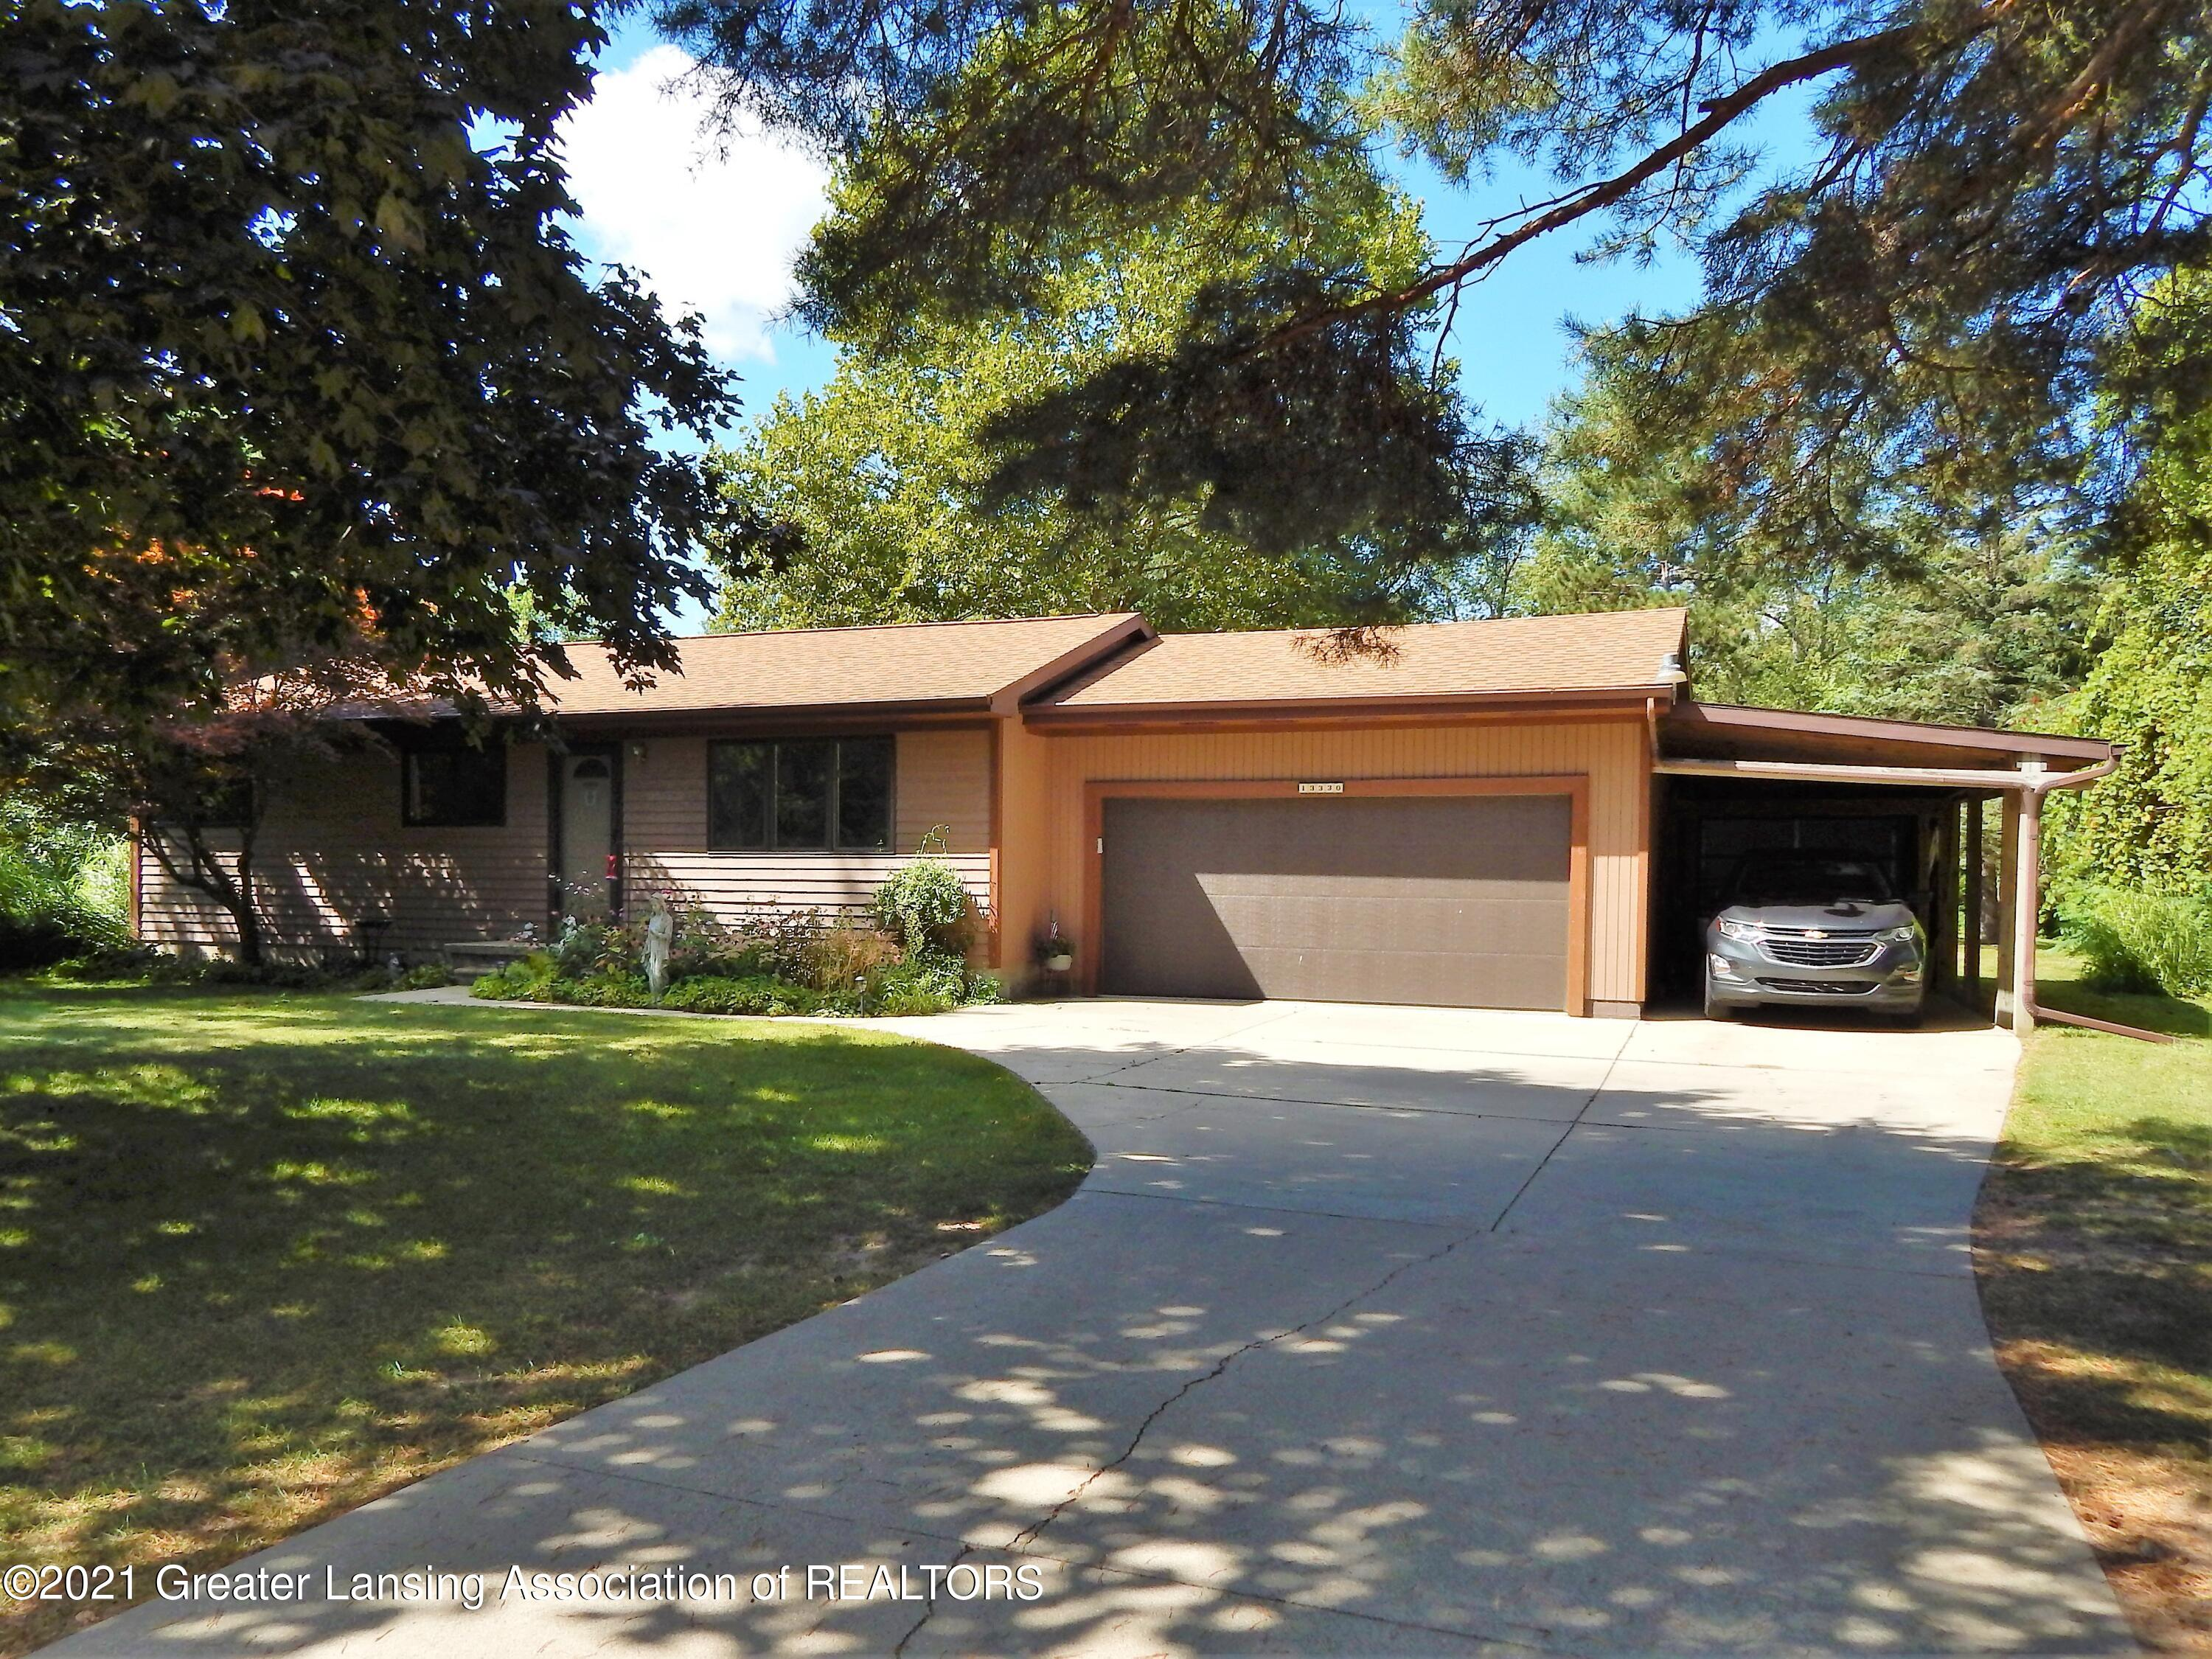 13330 Wood Rd - Welcome Home! - 1